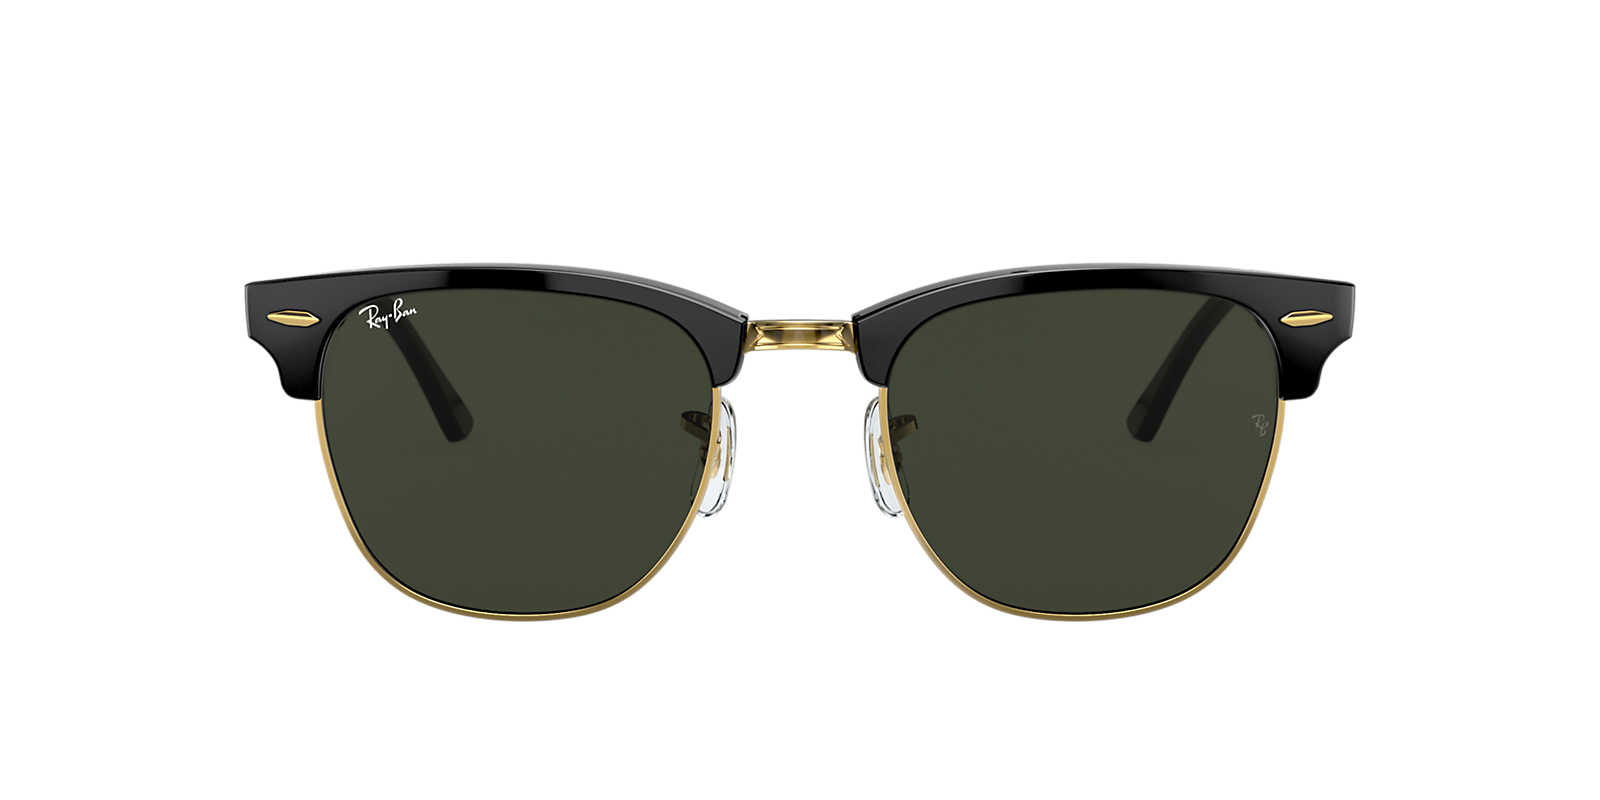 51mm Ray Ban Clubmaster